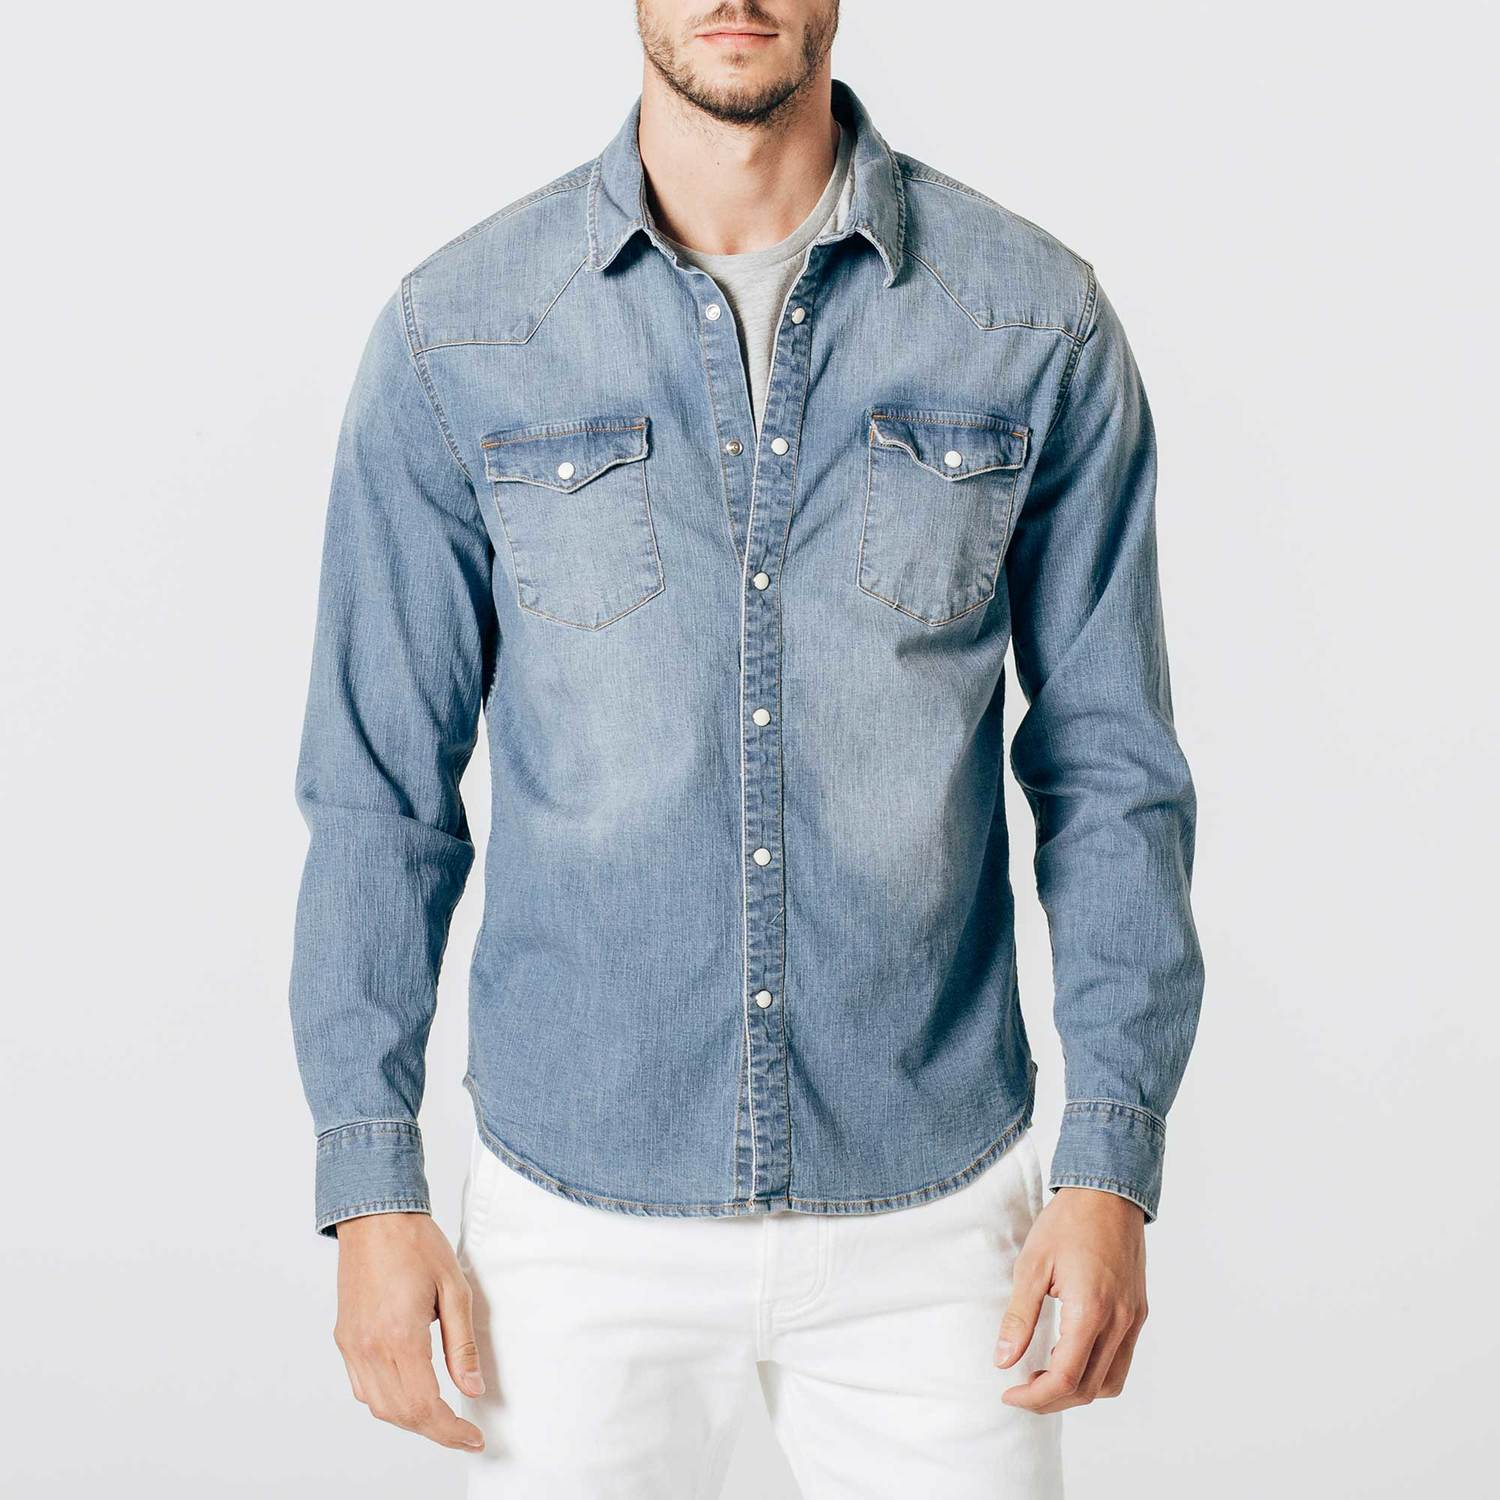 Mens Snap Button Down Denim Shirt In Light Wash by Dstld